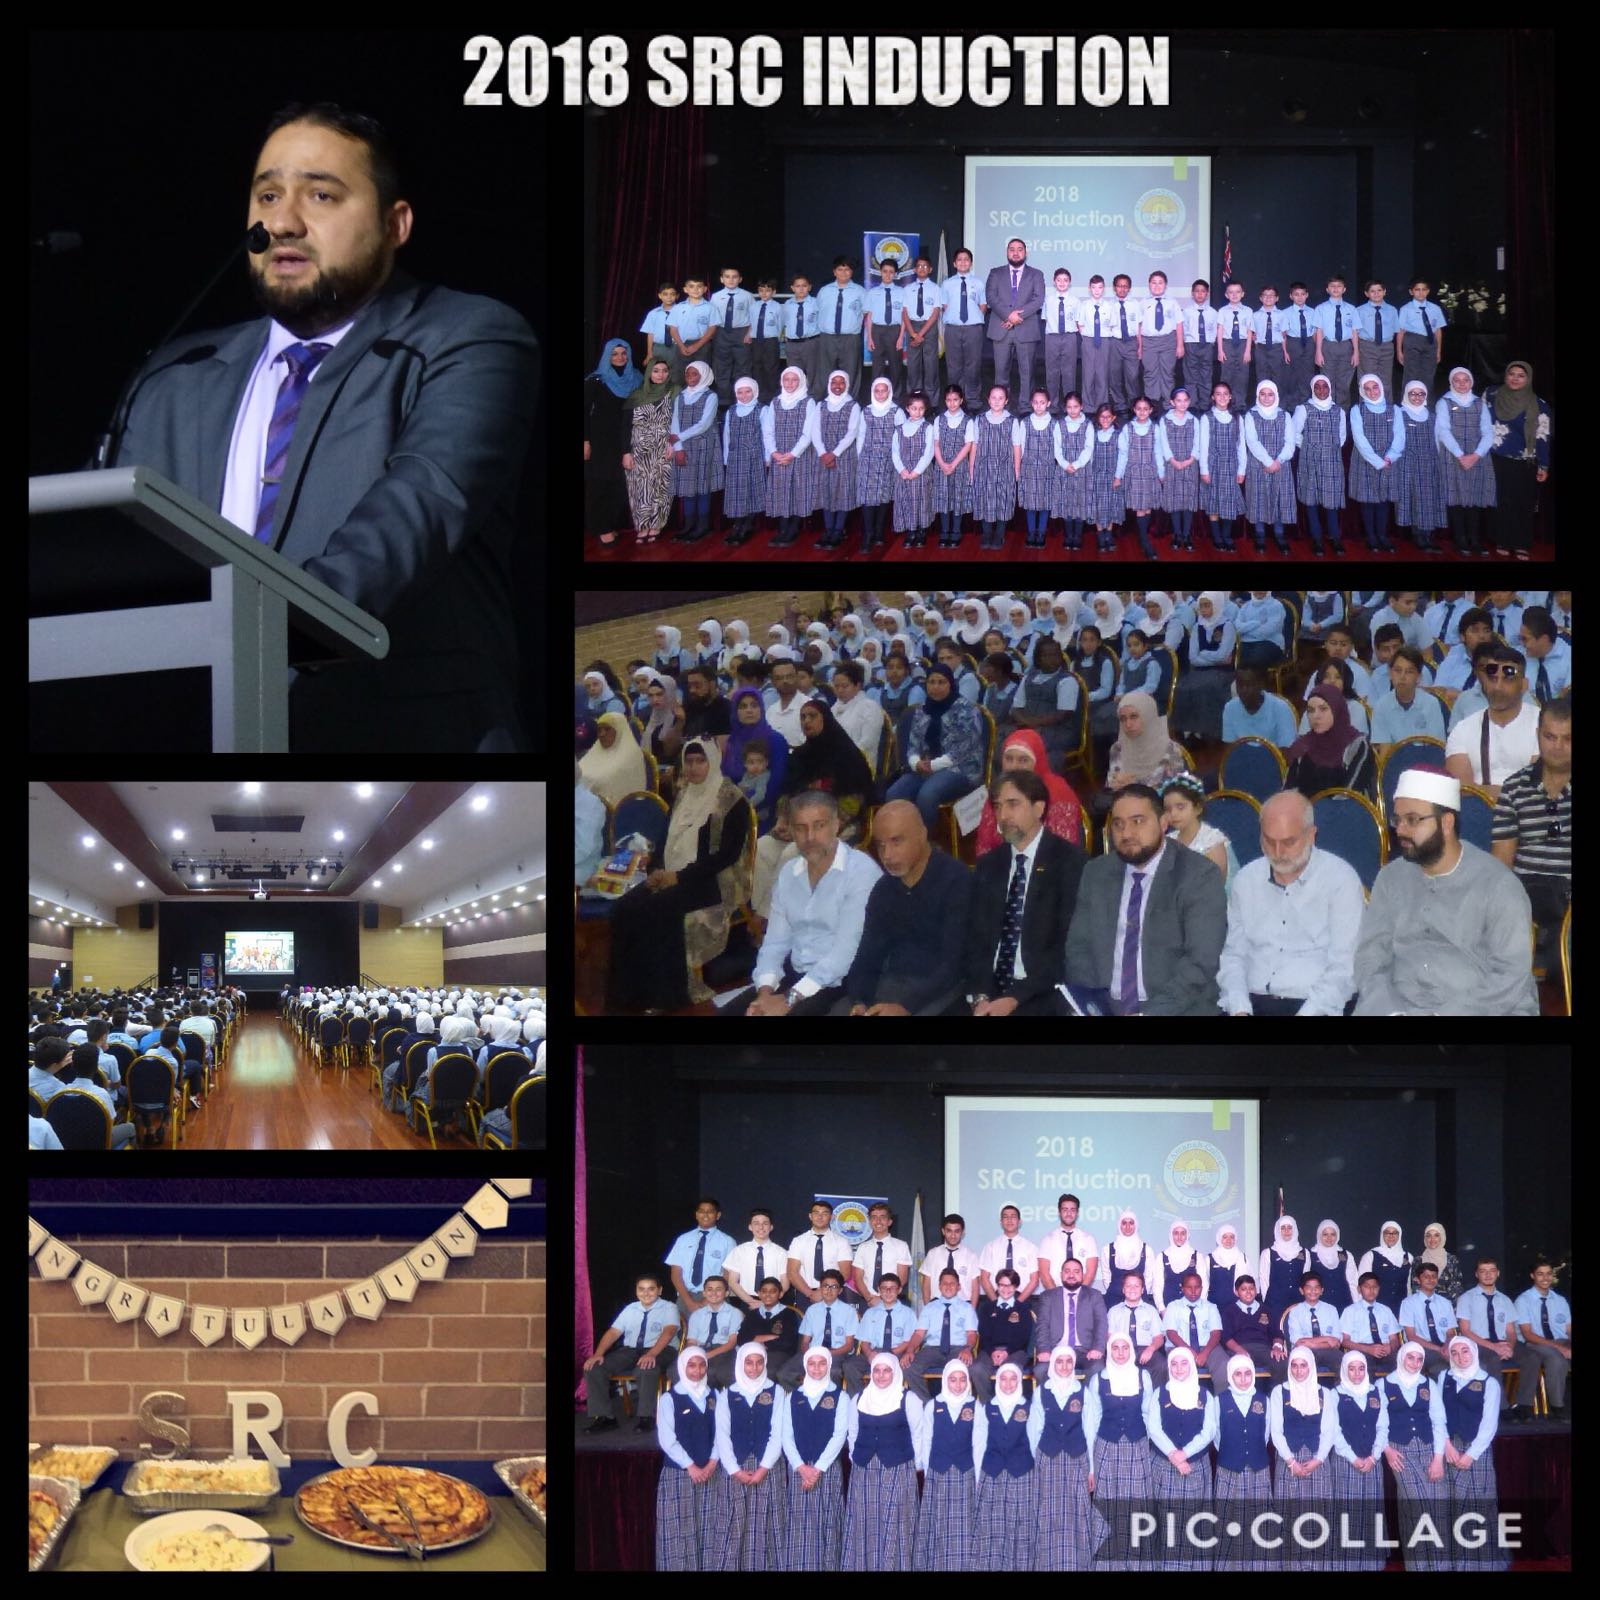 Al Amanah College – Liverpool Campus 2018 SRC Induction Ceremony